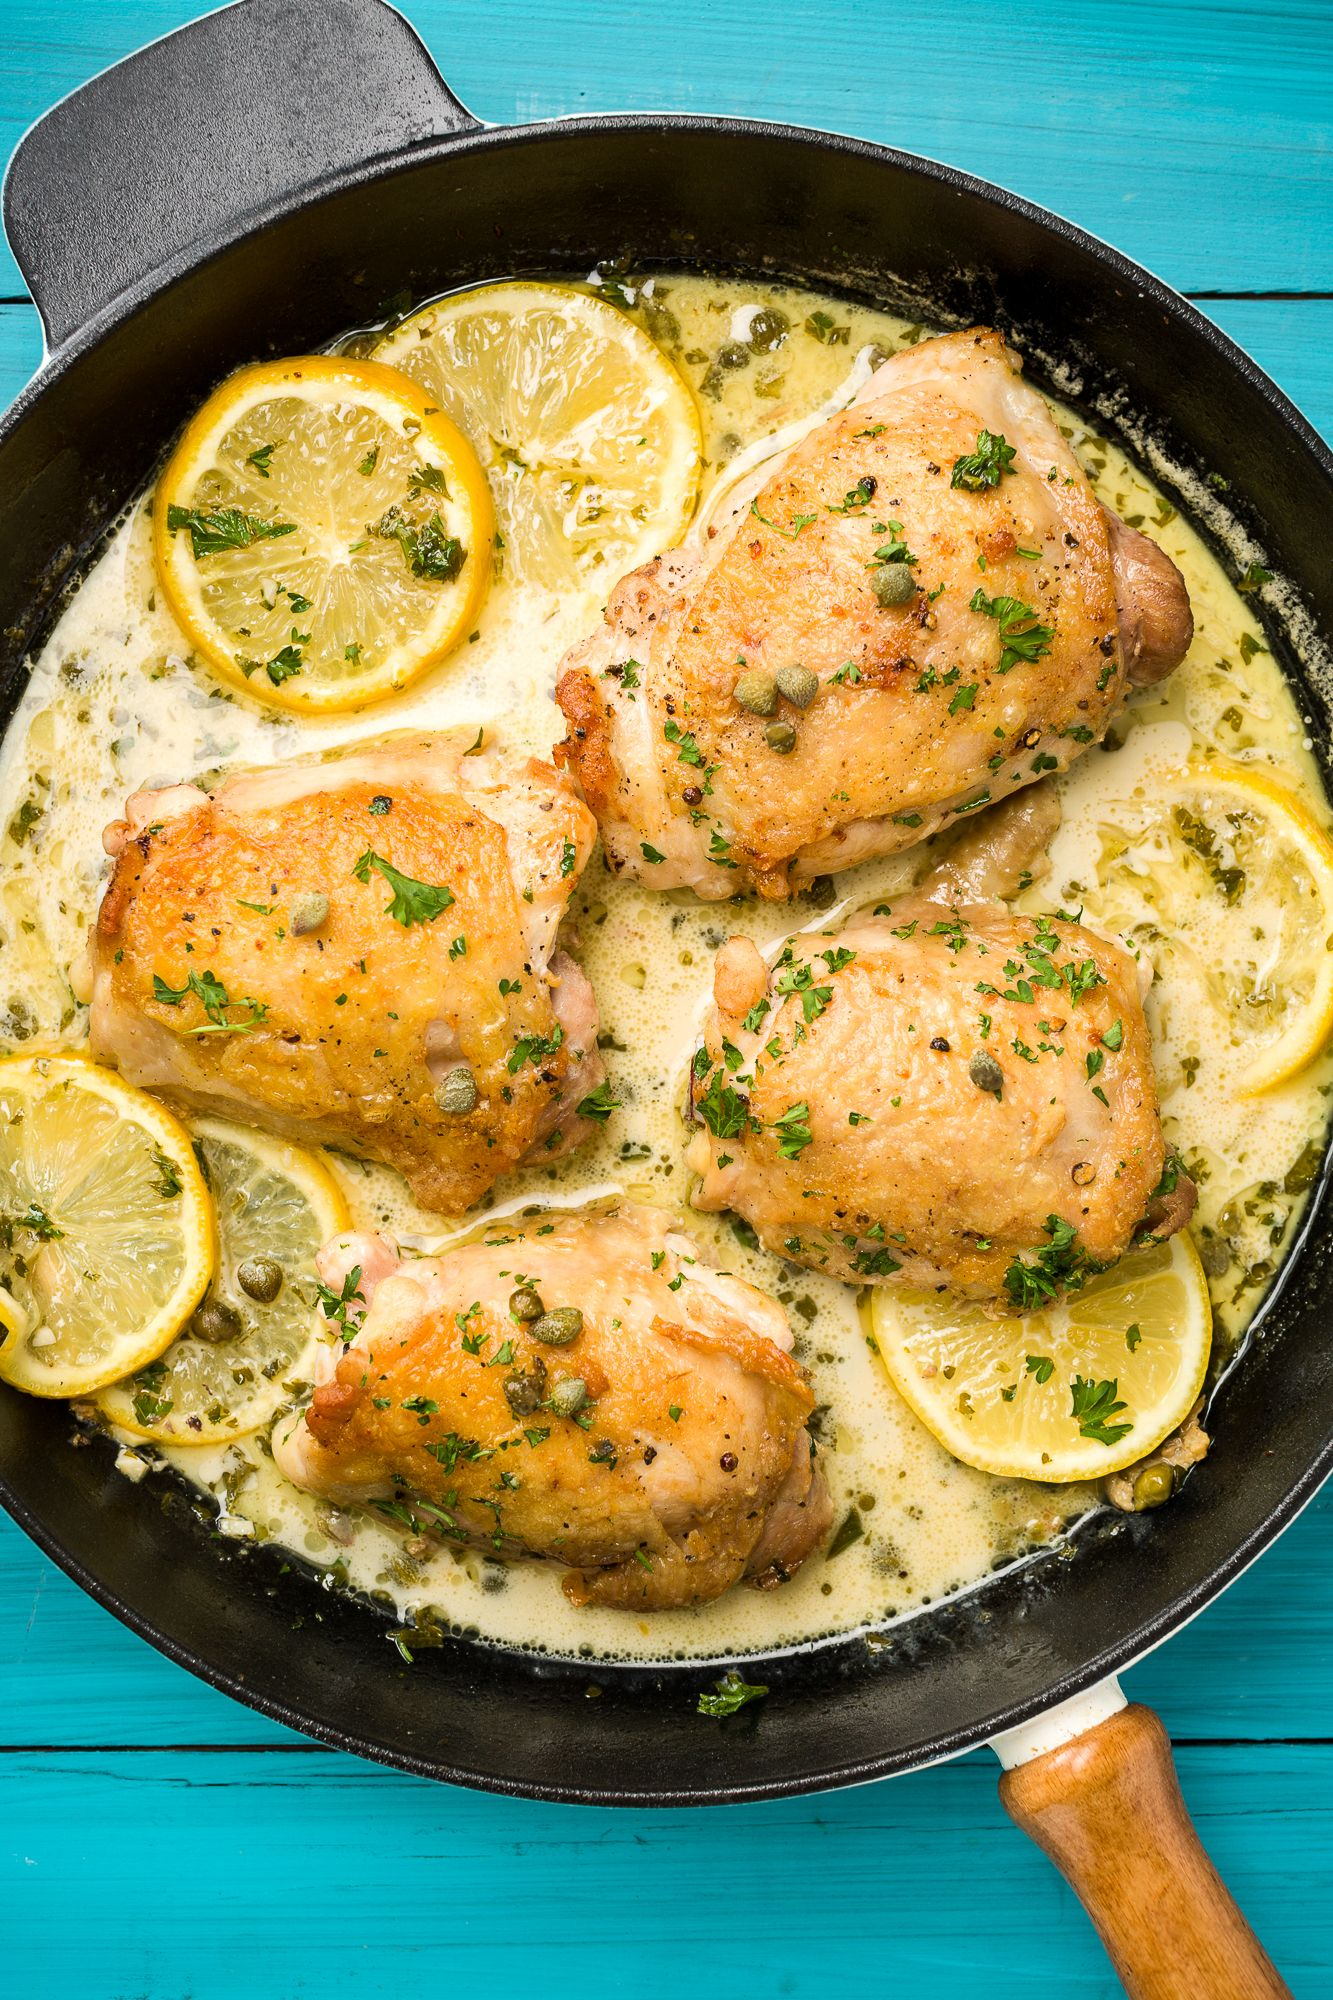 70 Easy Chicken Dinner Recipes Simple Ideas For Quick Chicken